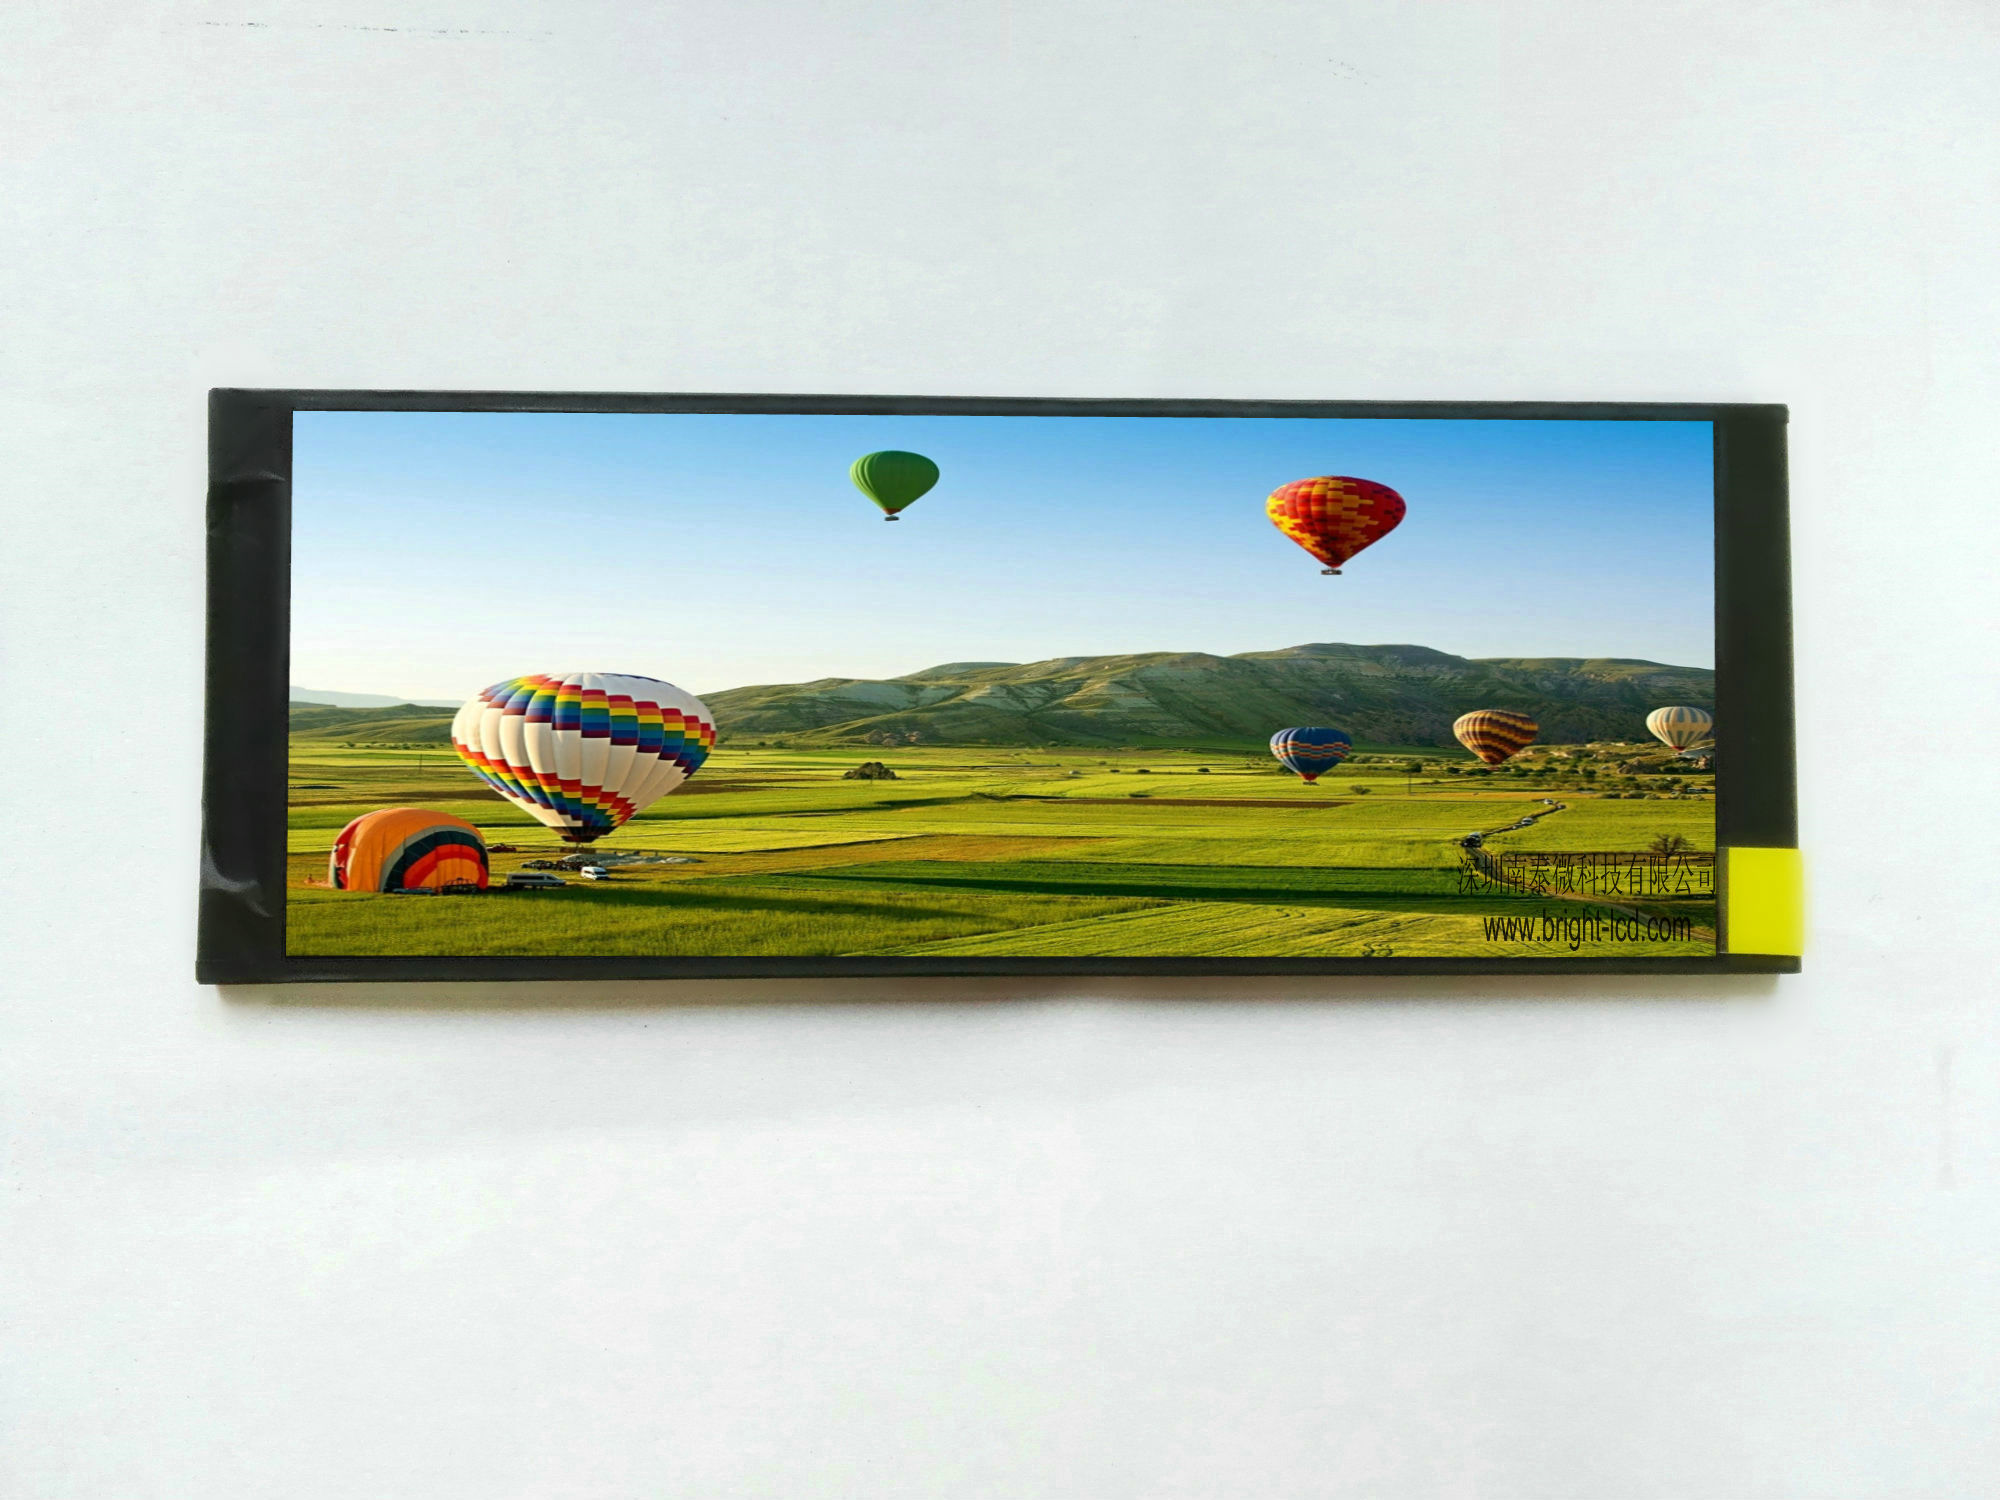 Hotsale 6.86inch TFT LCD with 1280x480 Resolution MIPI Interface